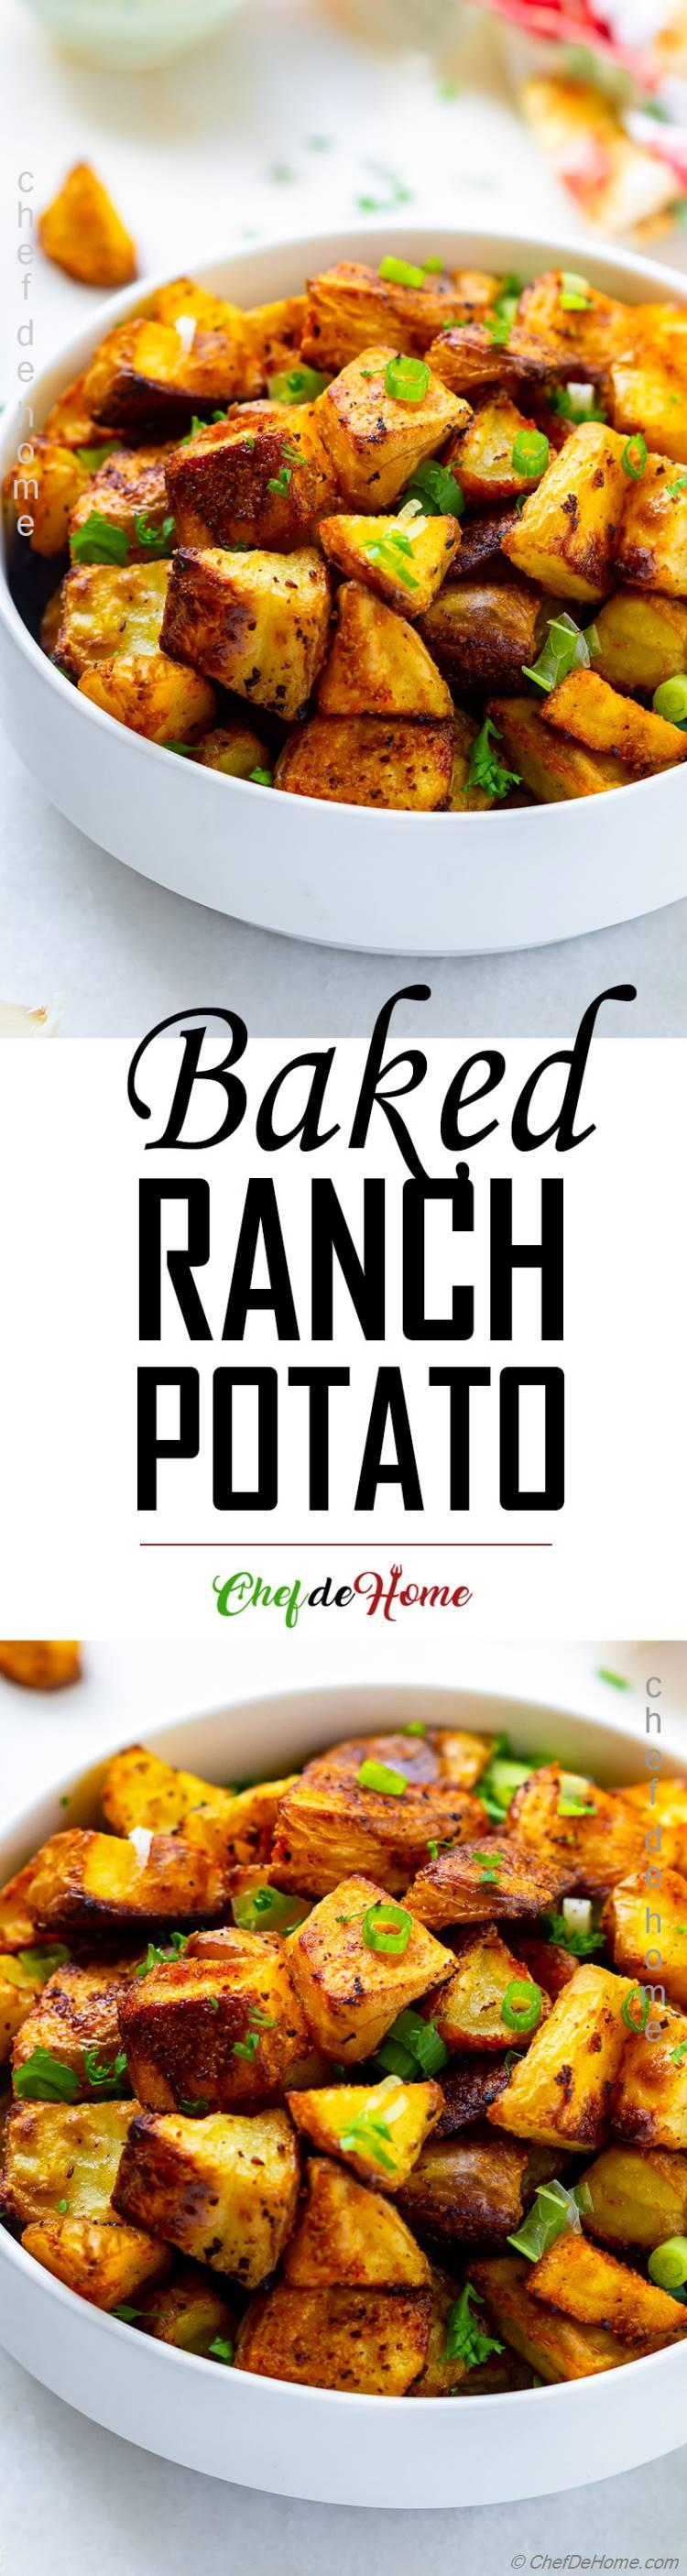 Baked Ranch Potato Recipe Crispy Potato Spicy and Easy